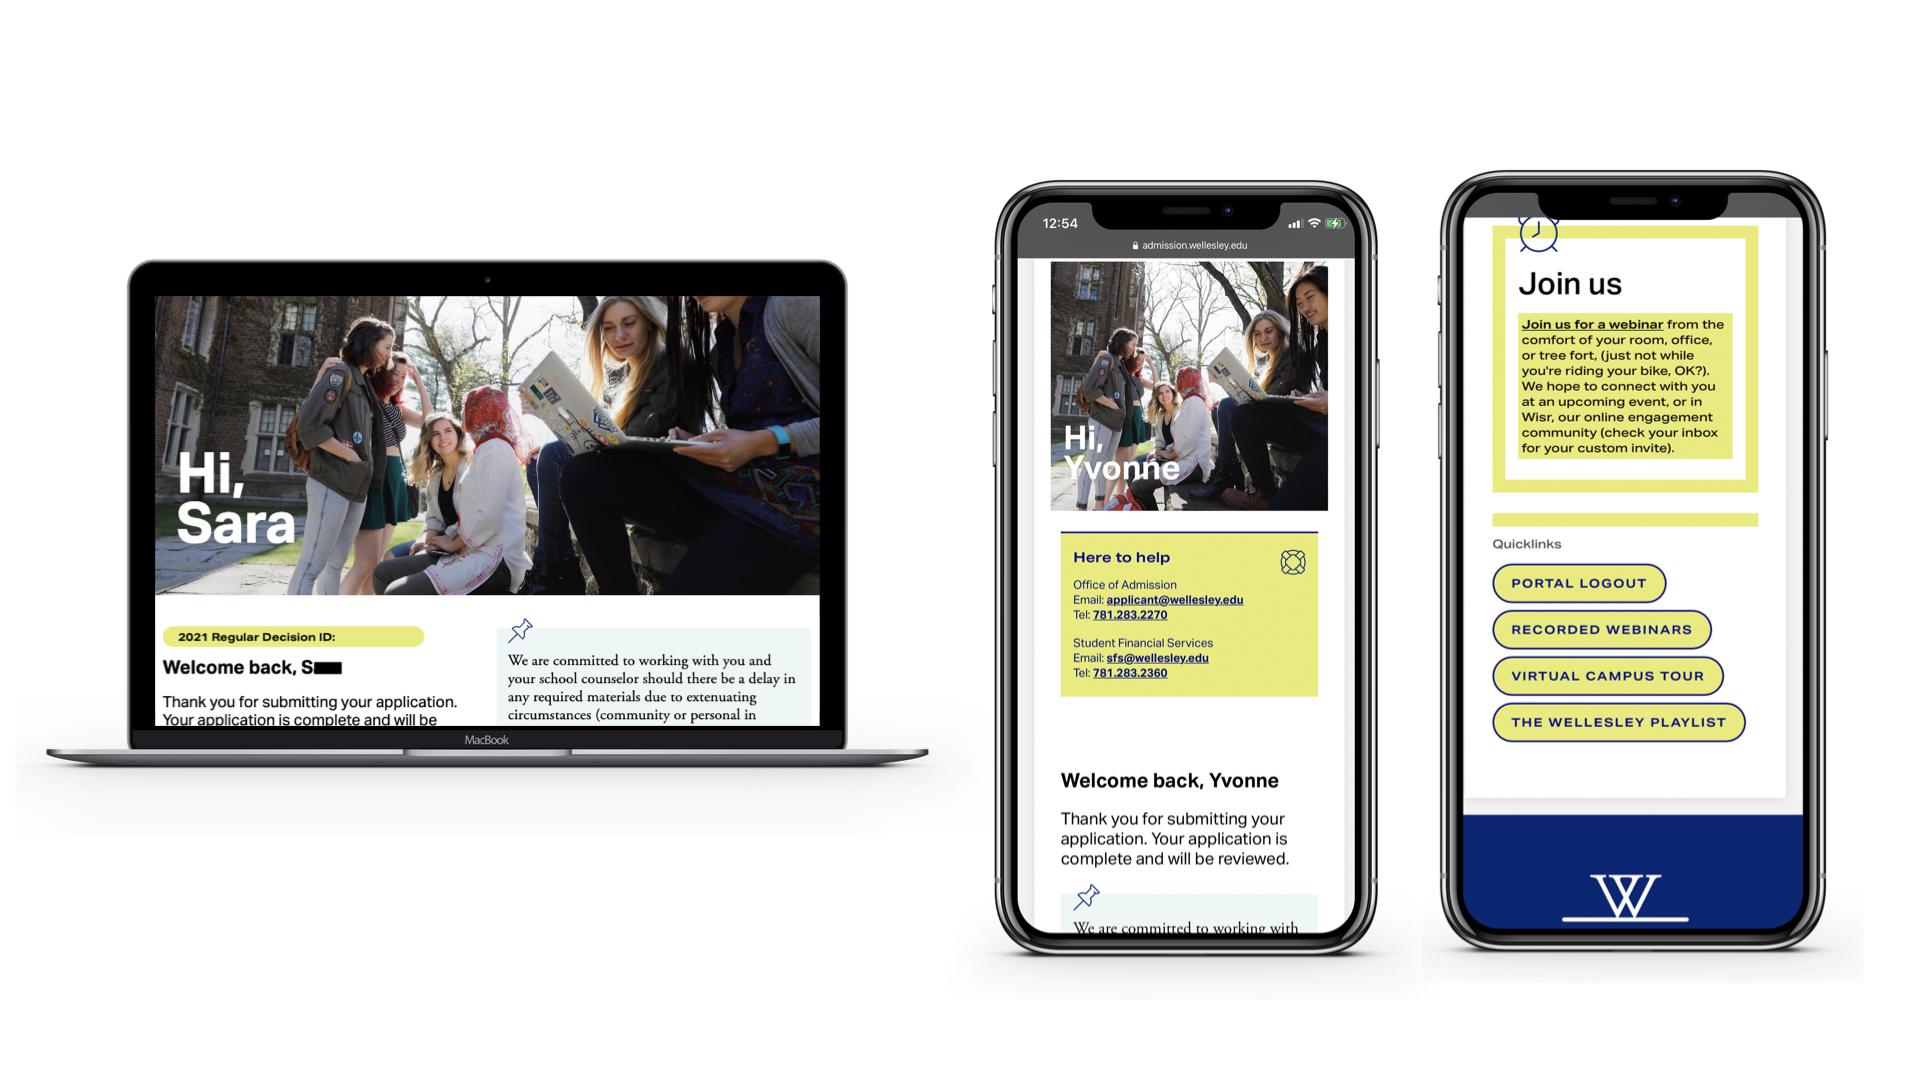 Images of the Wellesley College portal on desktop and iPhone